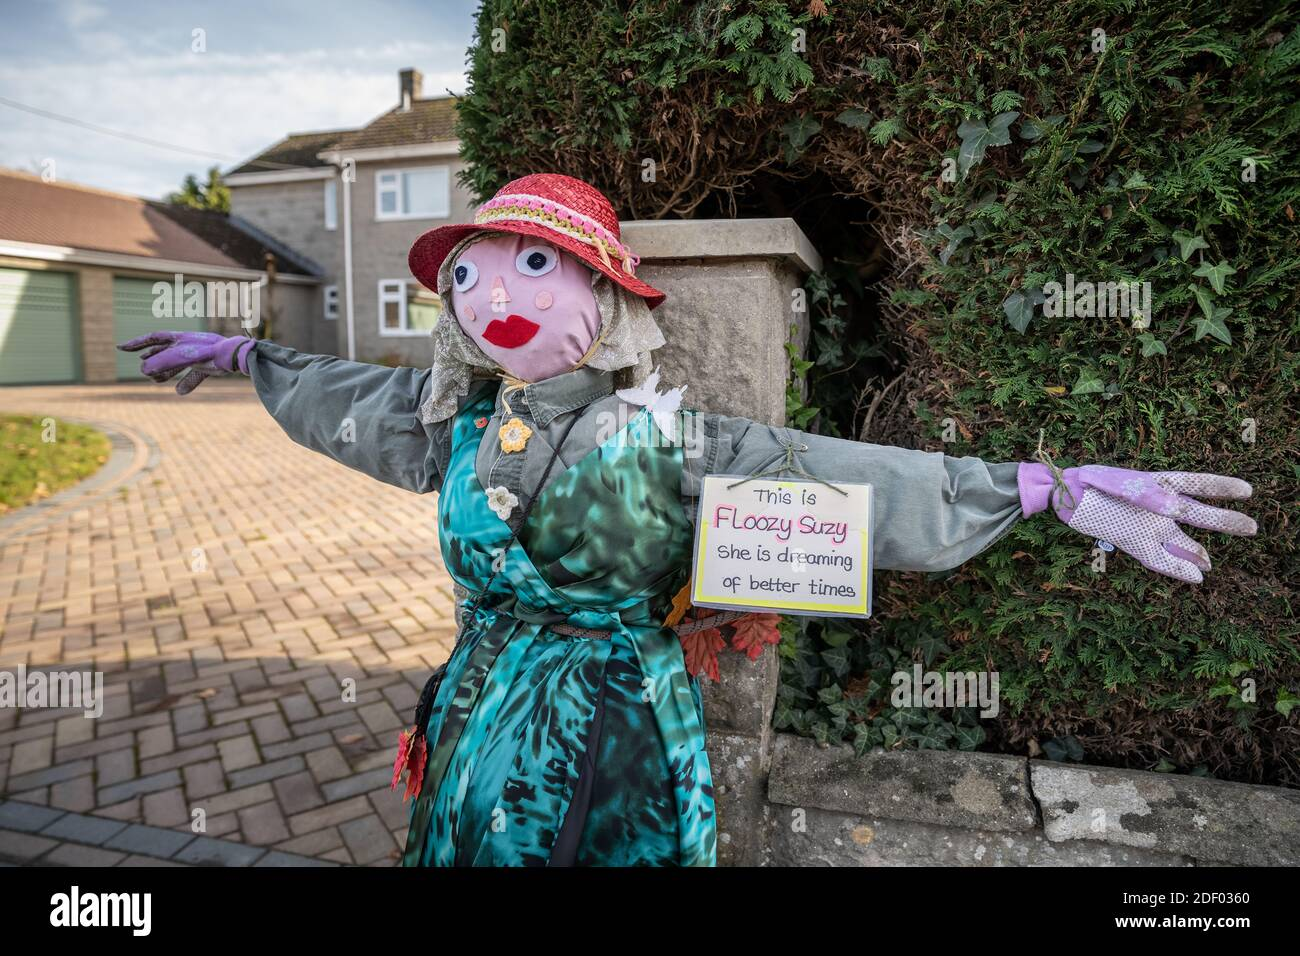 Coronavirus: Lockdown scarecrow characters bring some local homemade humour to the town of Marston Magna in Somerset, UK. Stock Photo